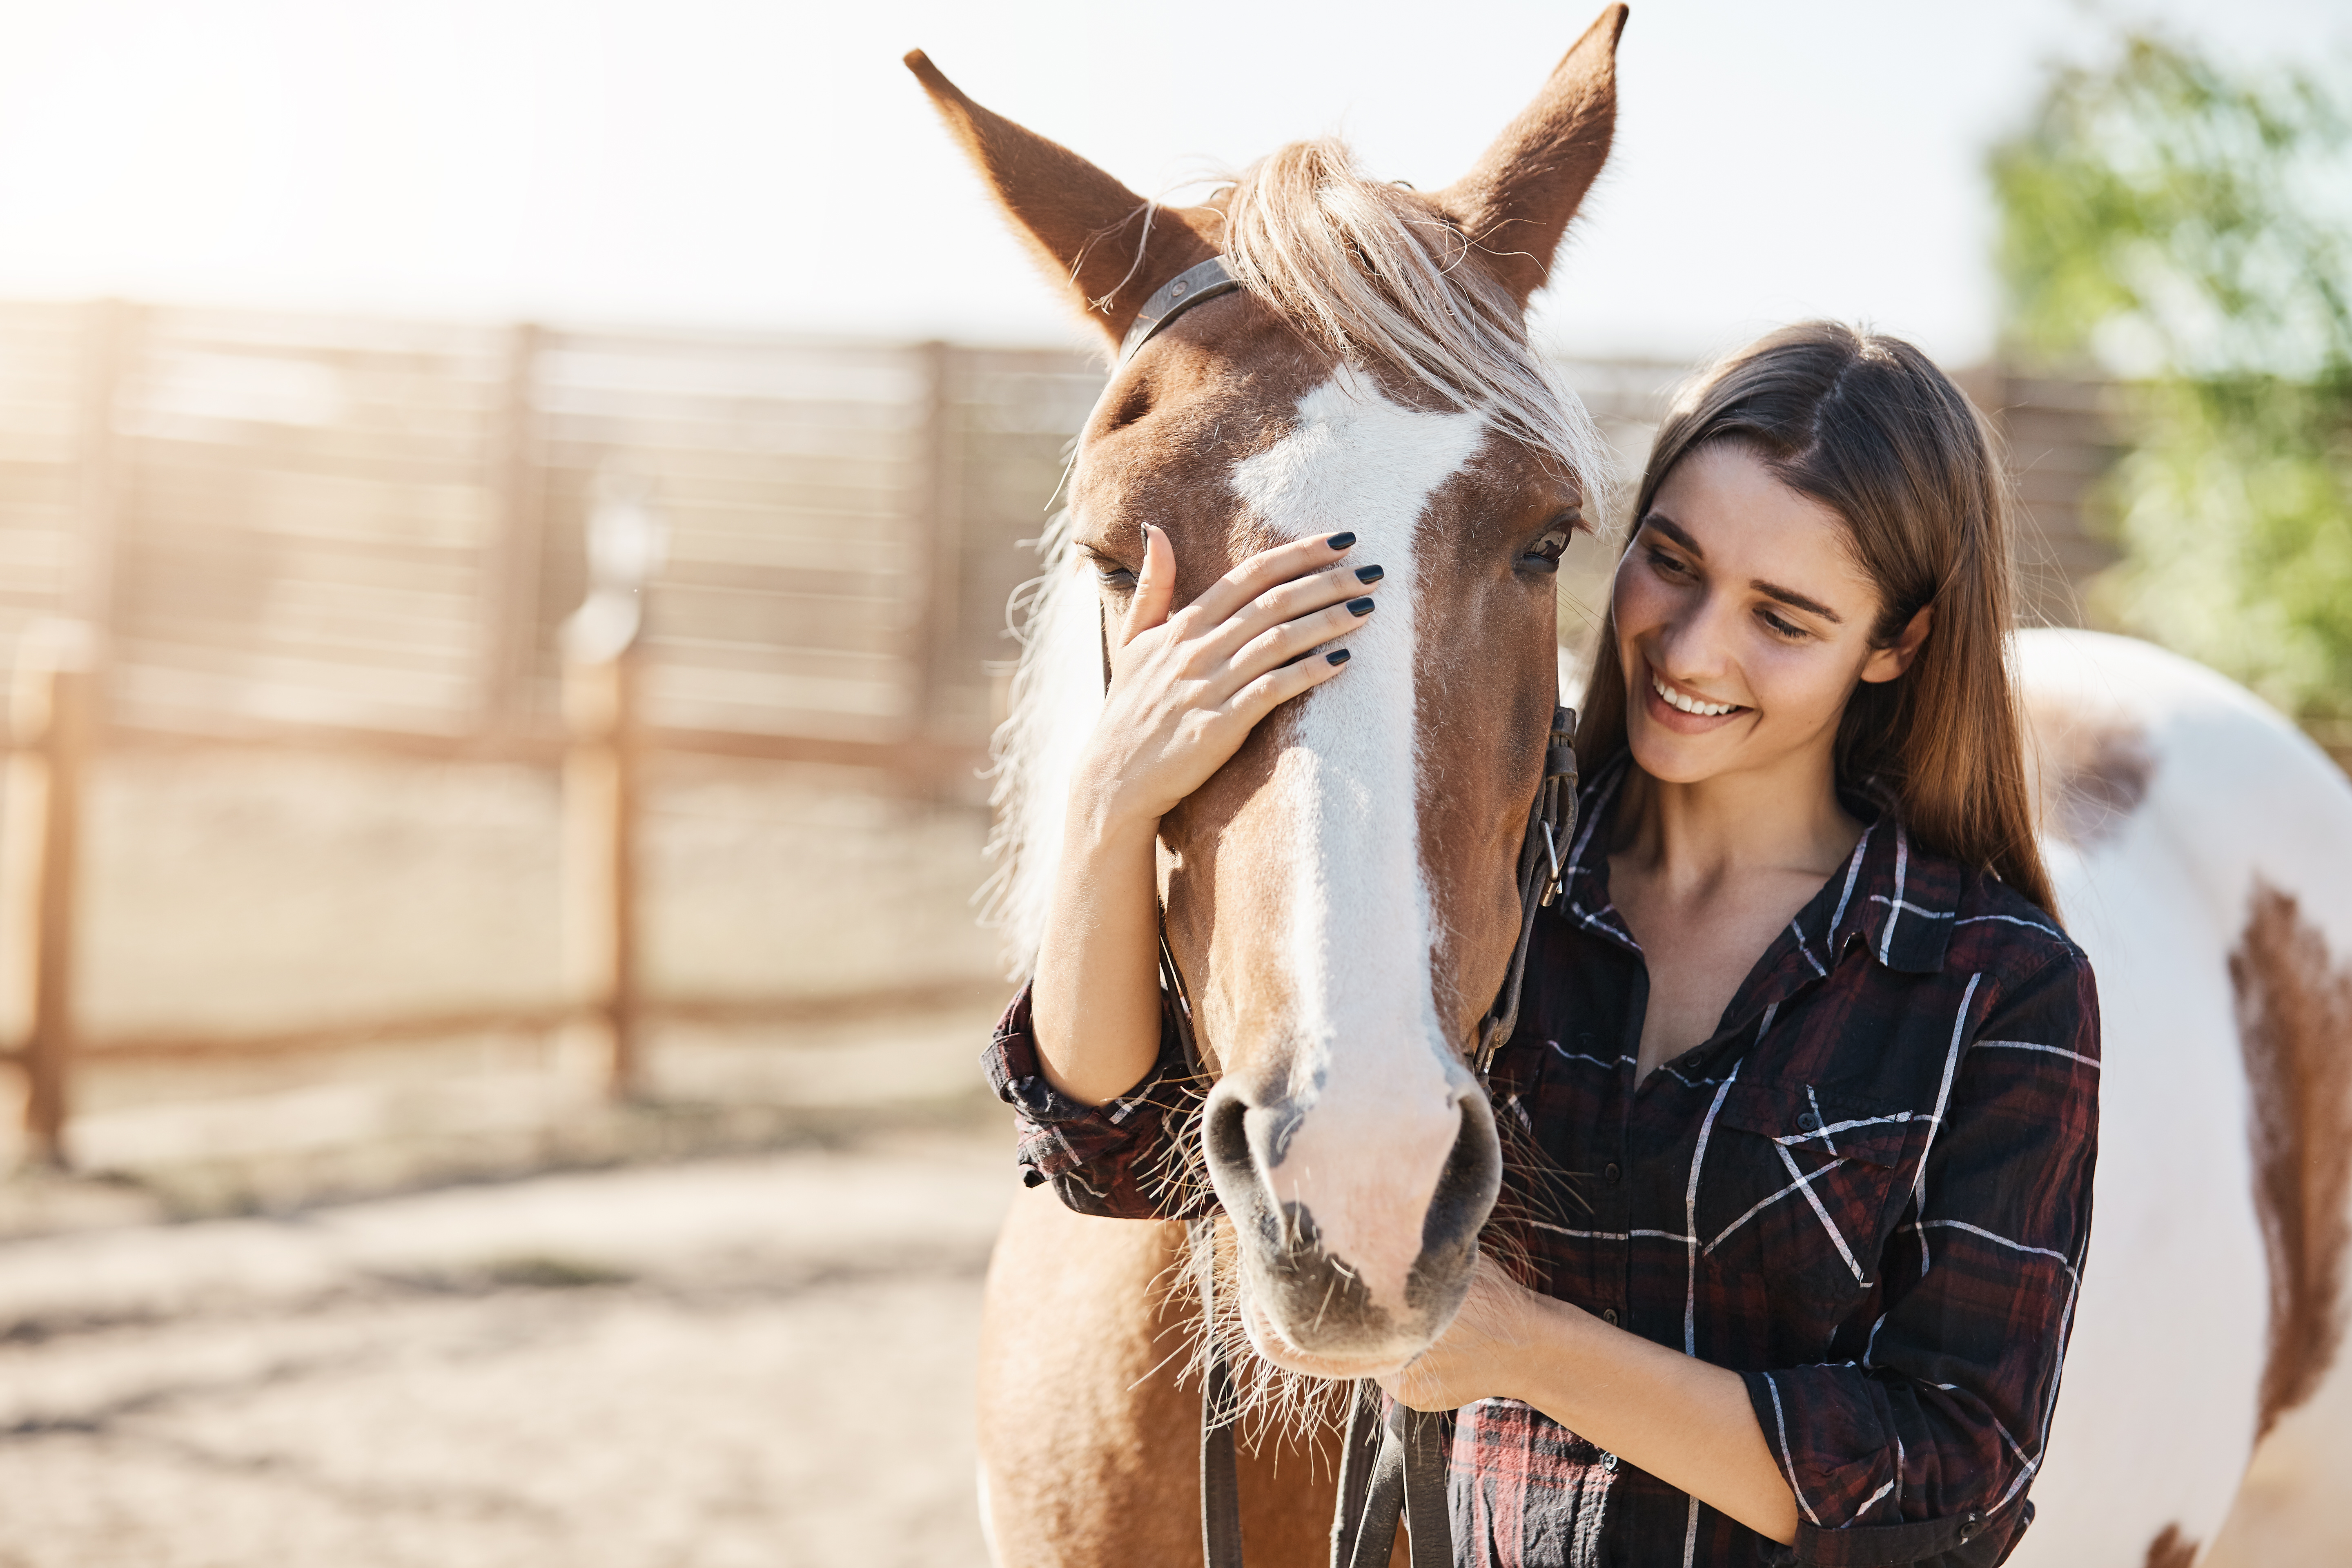 Horse and Rider: Does Your HorseTrust You?